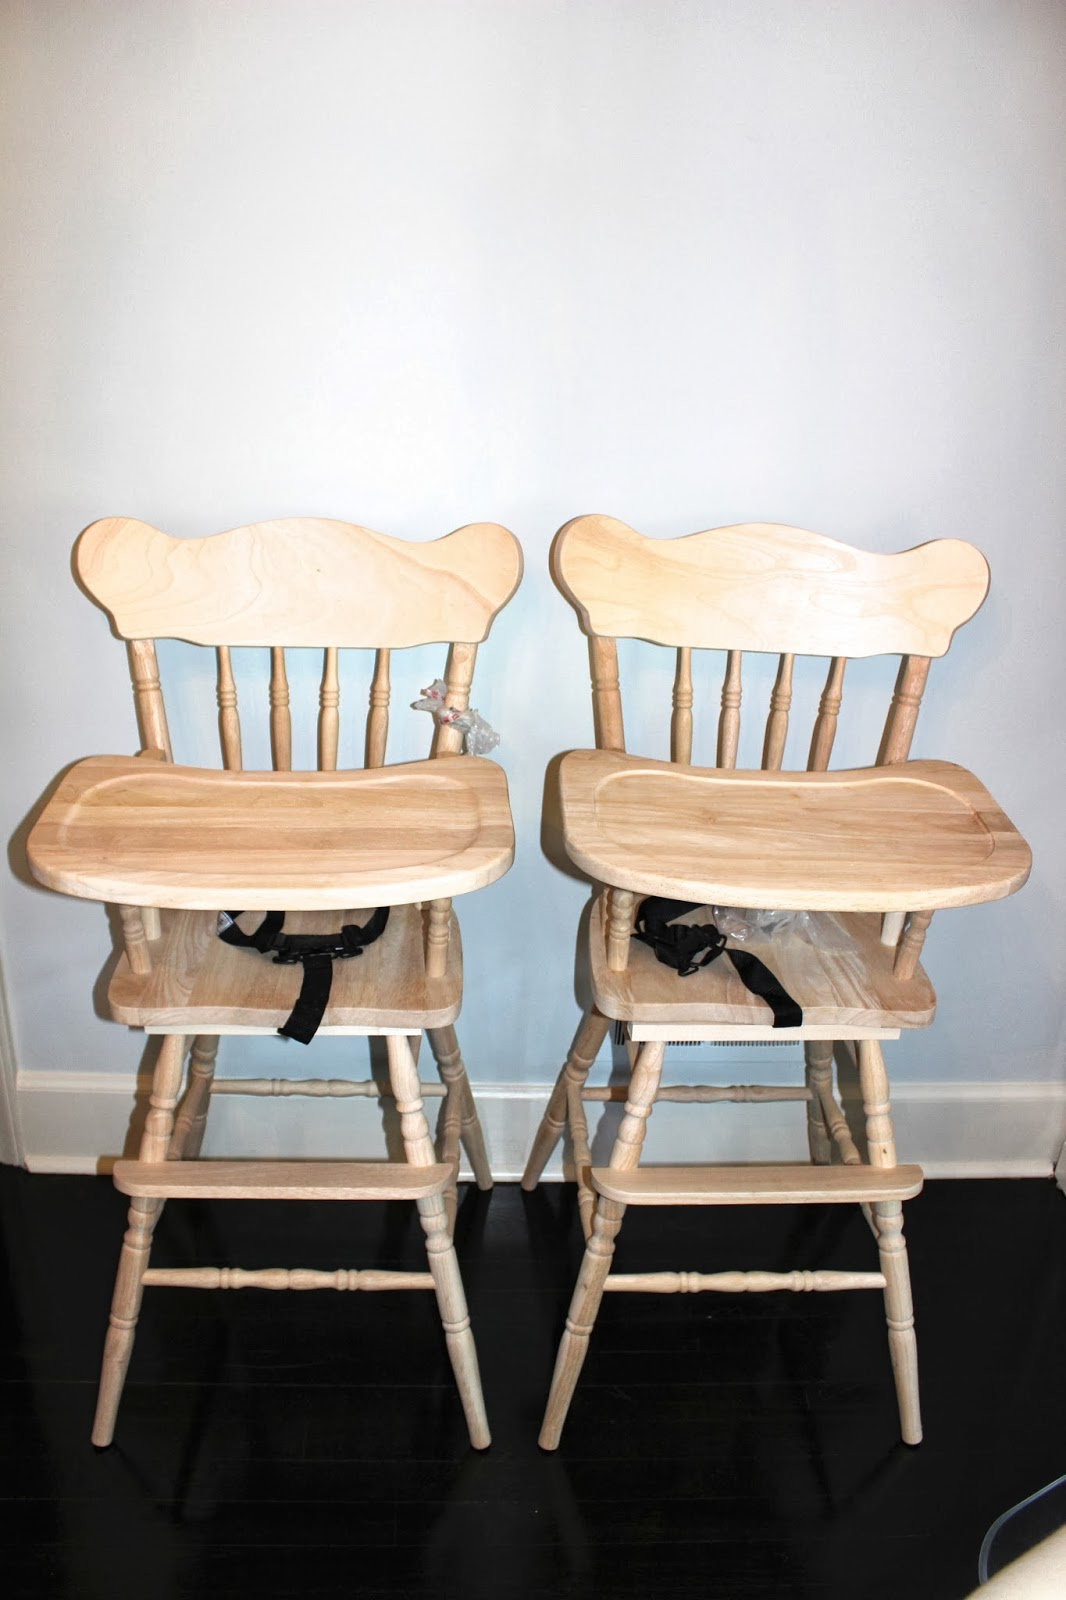 Our Londry Room: High Chairs!